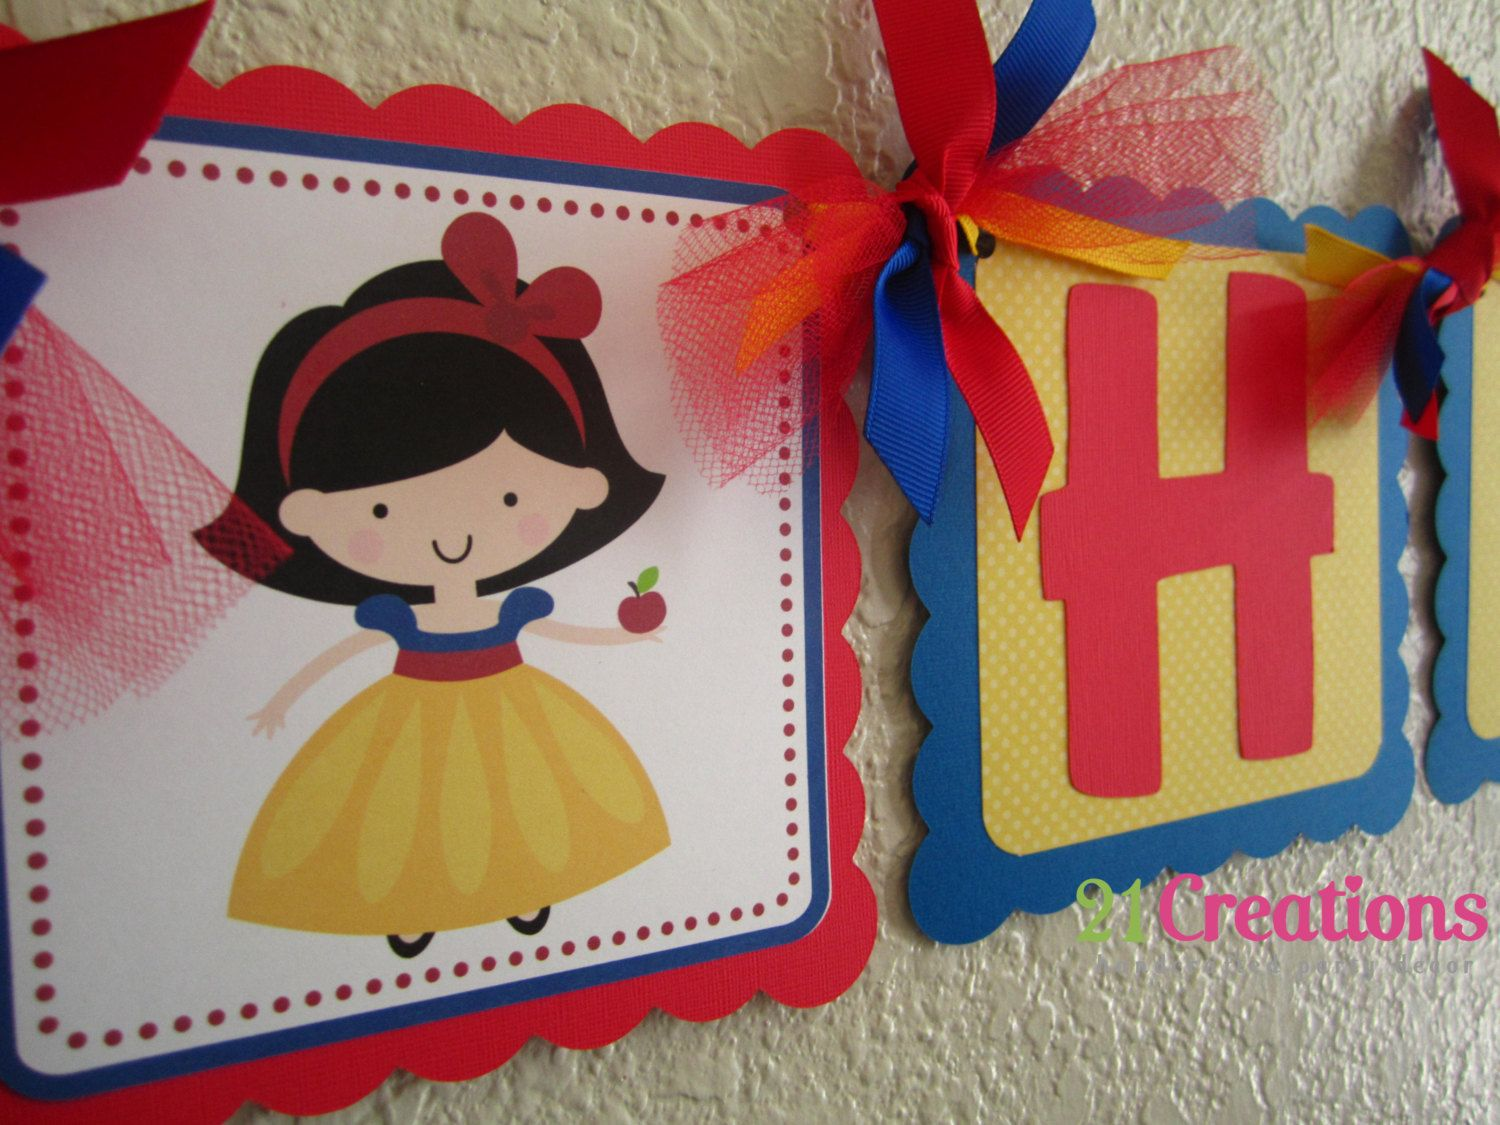 Snow white apron etsy - Snow White Birthday Banner By 21creations On Etsy 30 00